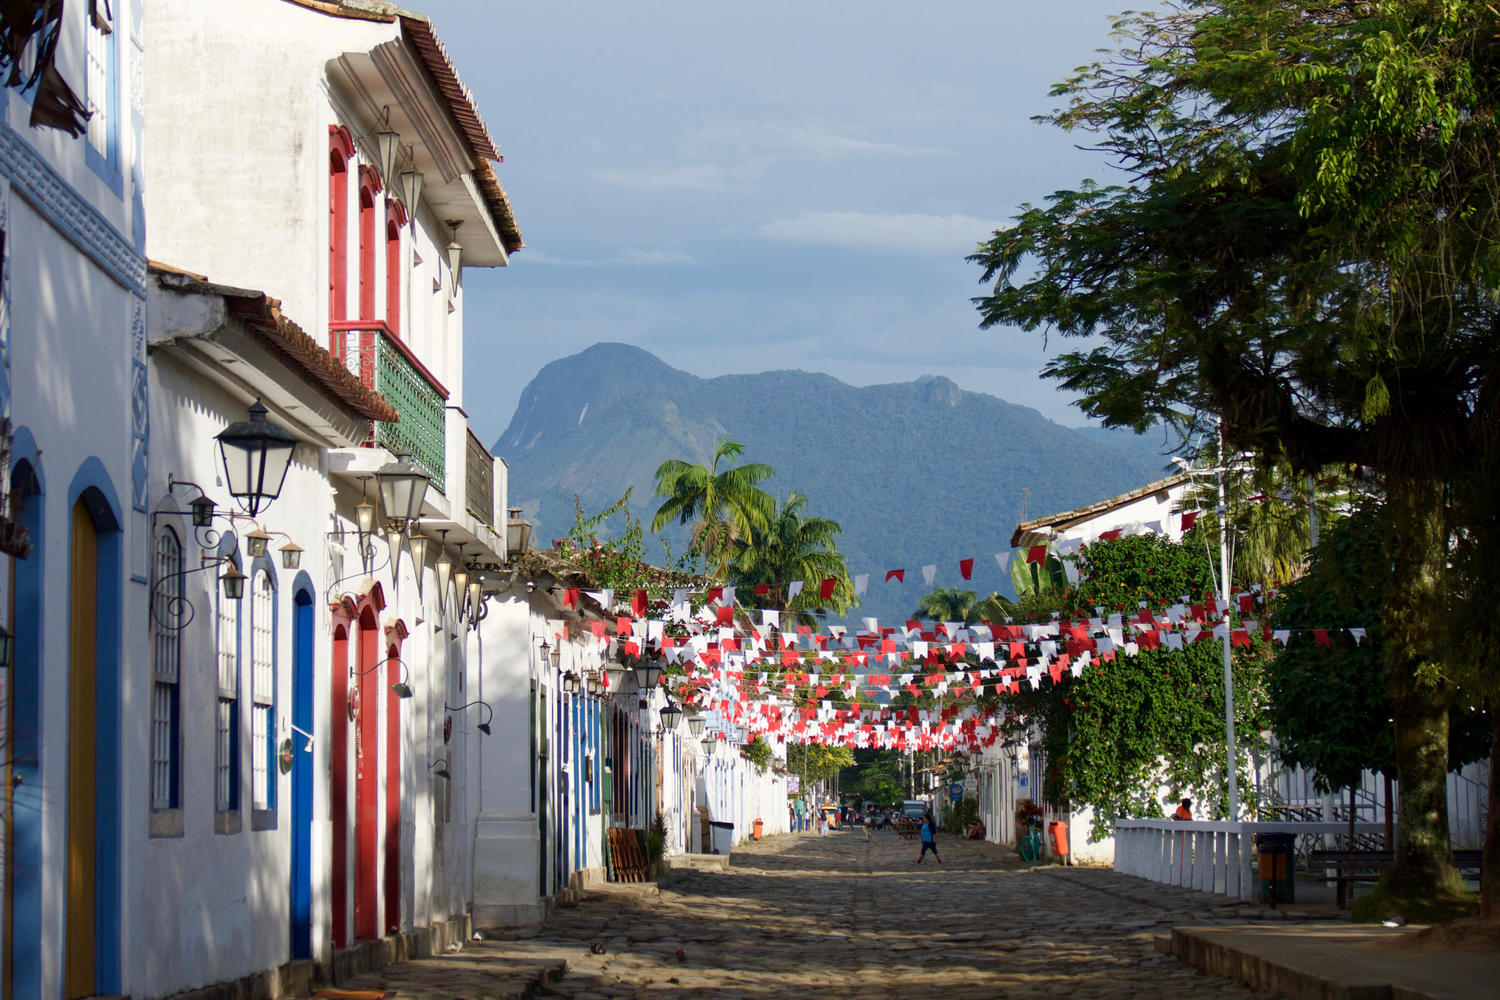 The heart of colonial Paraty